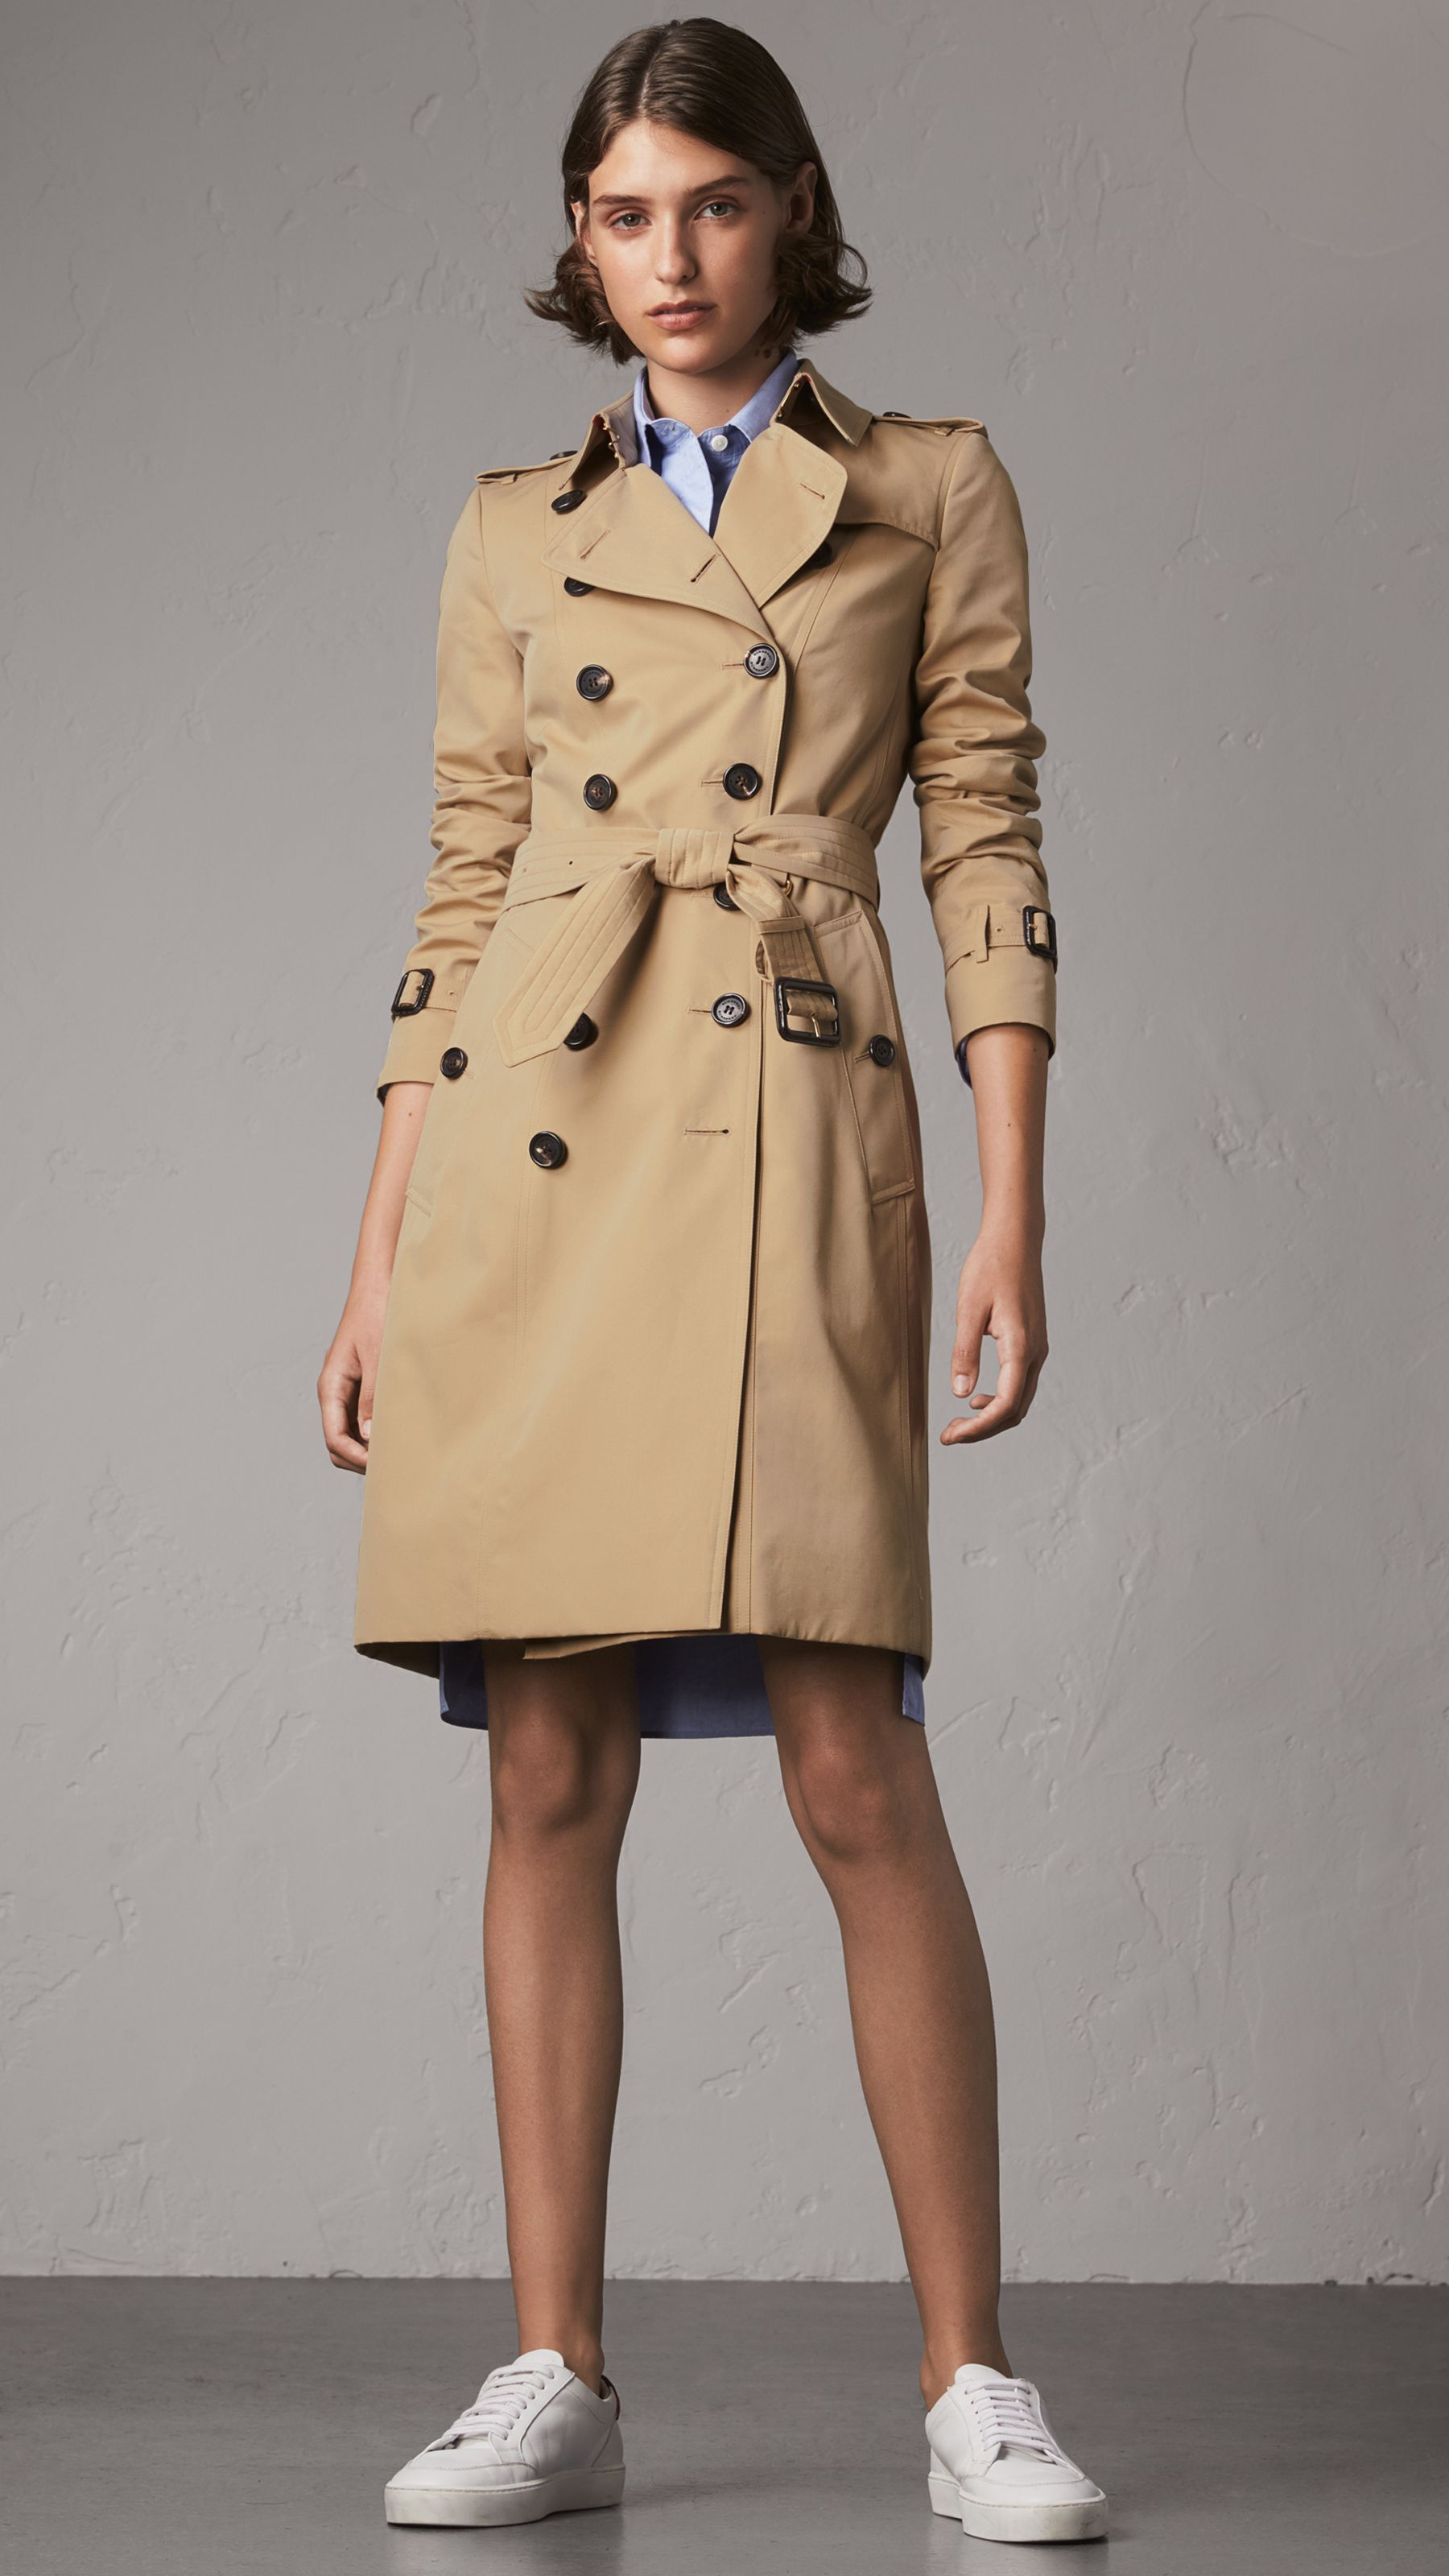 Women S Clothing Burberry United States Trench Coats Women Outfit Trench Coats Women Trench Coat Outfit